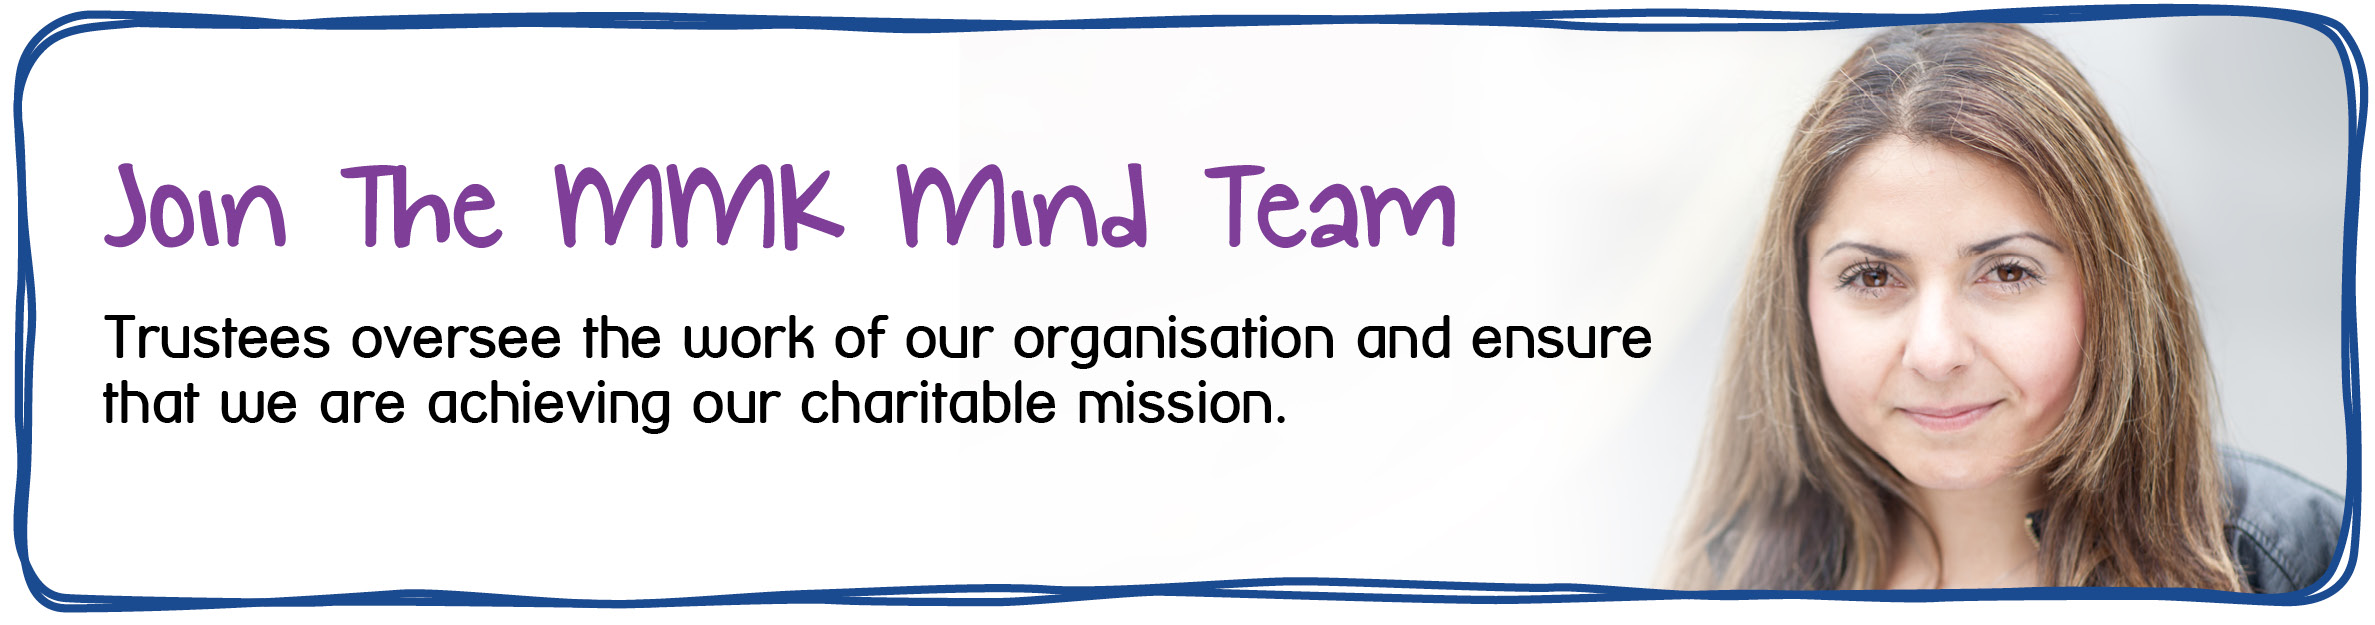 Trustee Vacancy - Join the MMK Mind Team. Trustees oversee the work of our organisation and ensure that we are achieving our charitable mission.